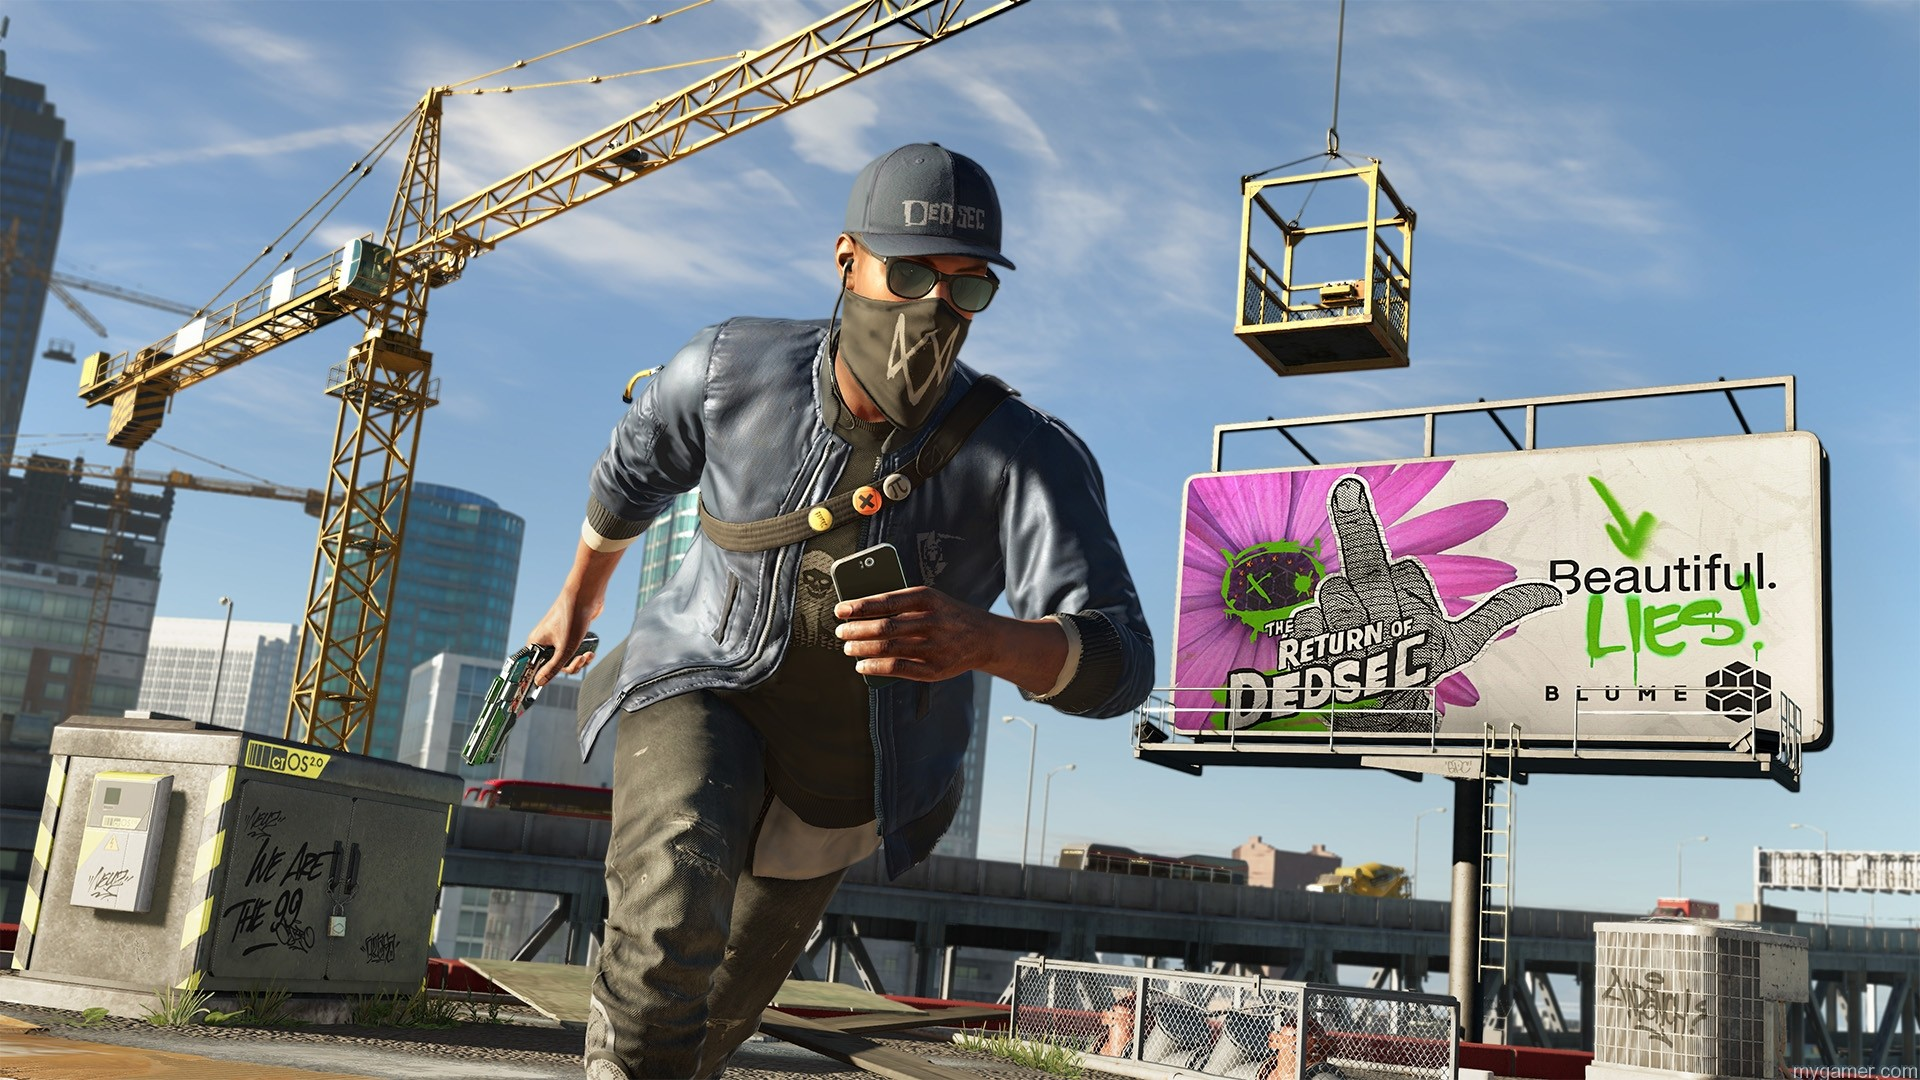 marcus holloway watch dogs 2  Watch Dogs 2 Preview wd media ss06 FULL marcus beautiful lies 254769